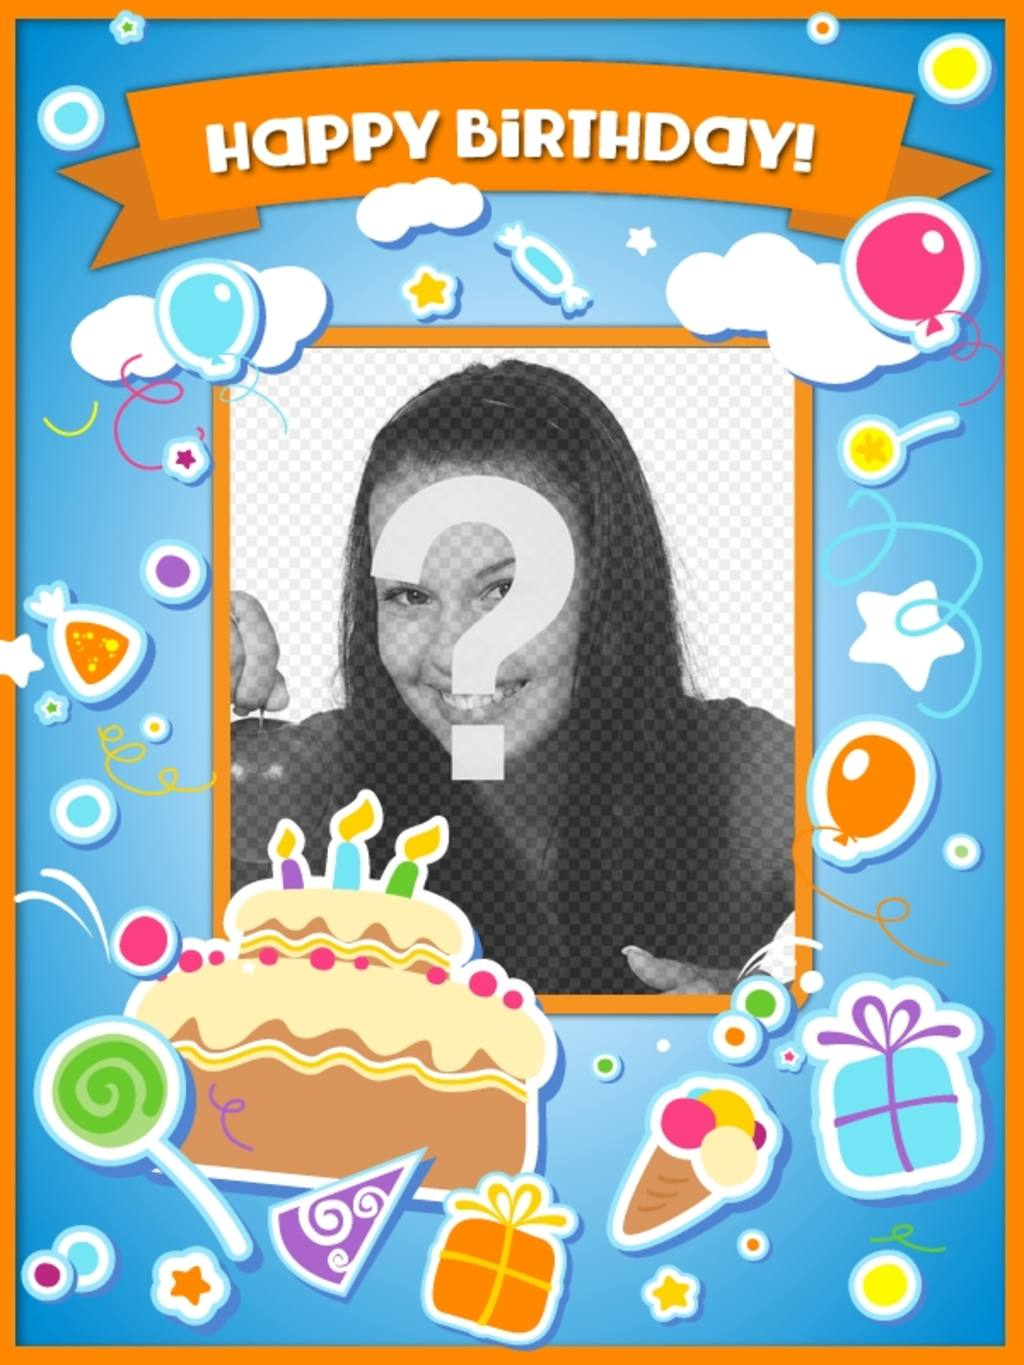 Birthday card to congratulate the birthday and put a picture online with a cake, balloons and gifts with sticker effect